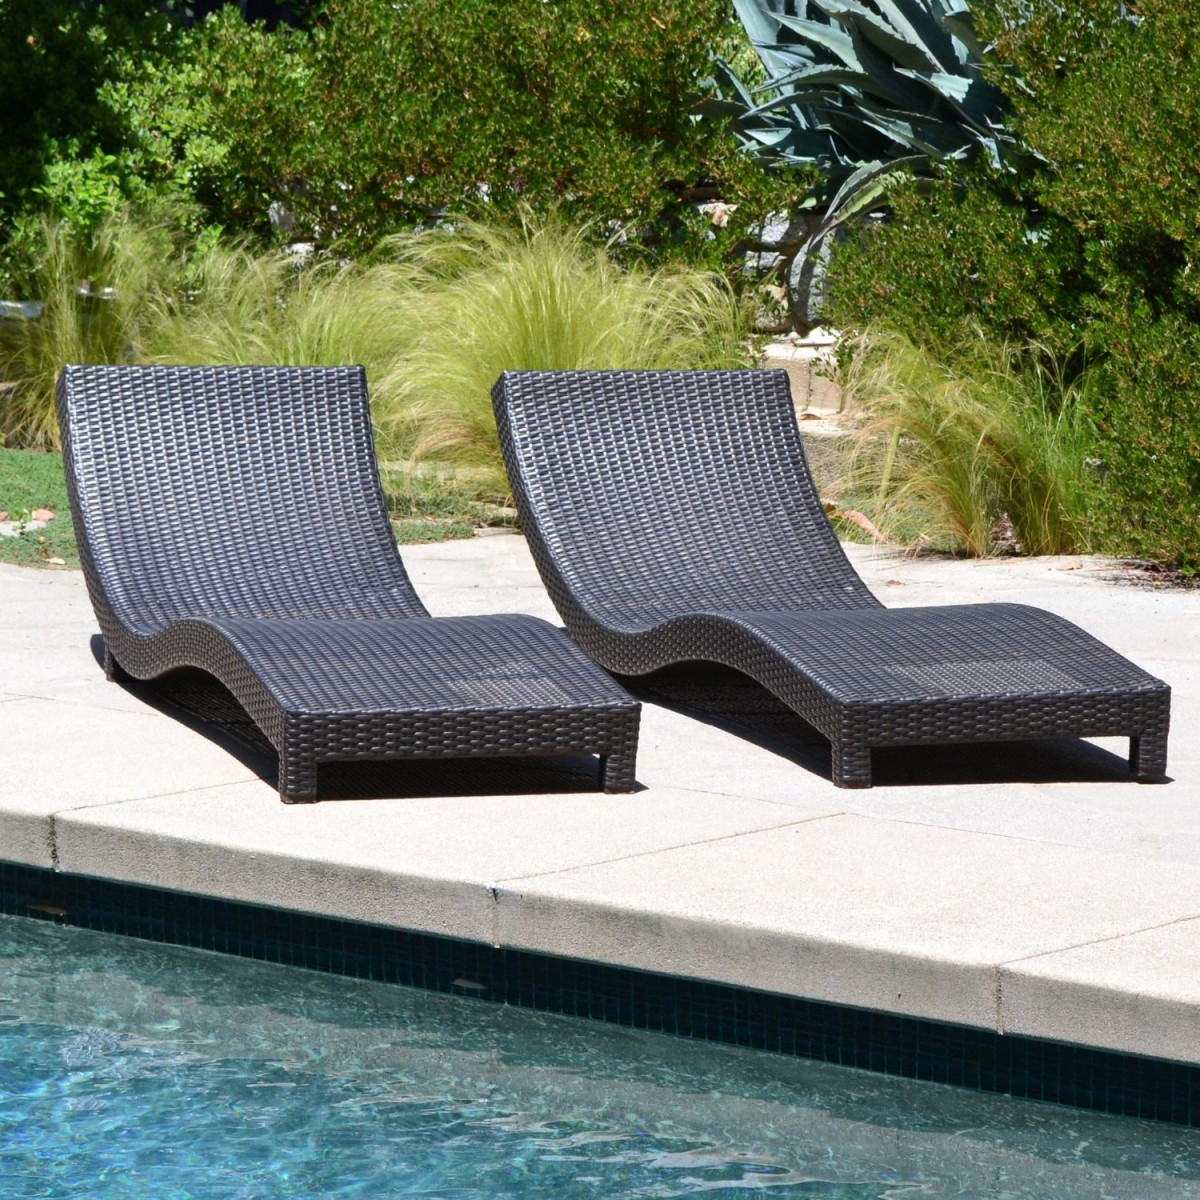 Camping Lounge Chair Coast Modern Living Outdoor Chaise Lounge Chairs W Cushions